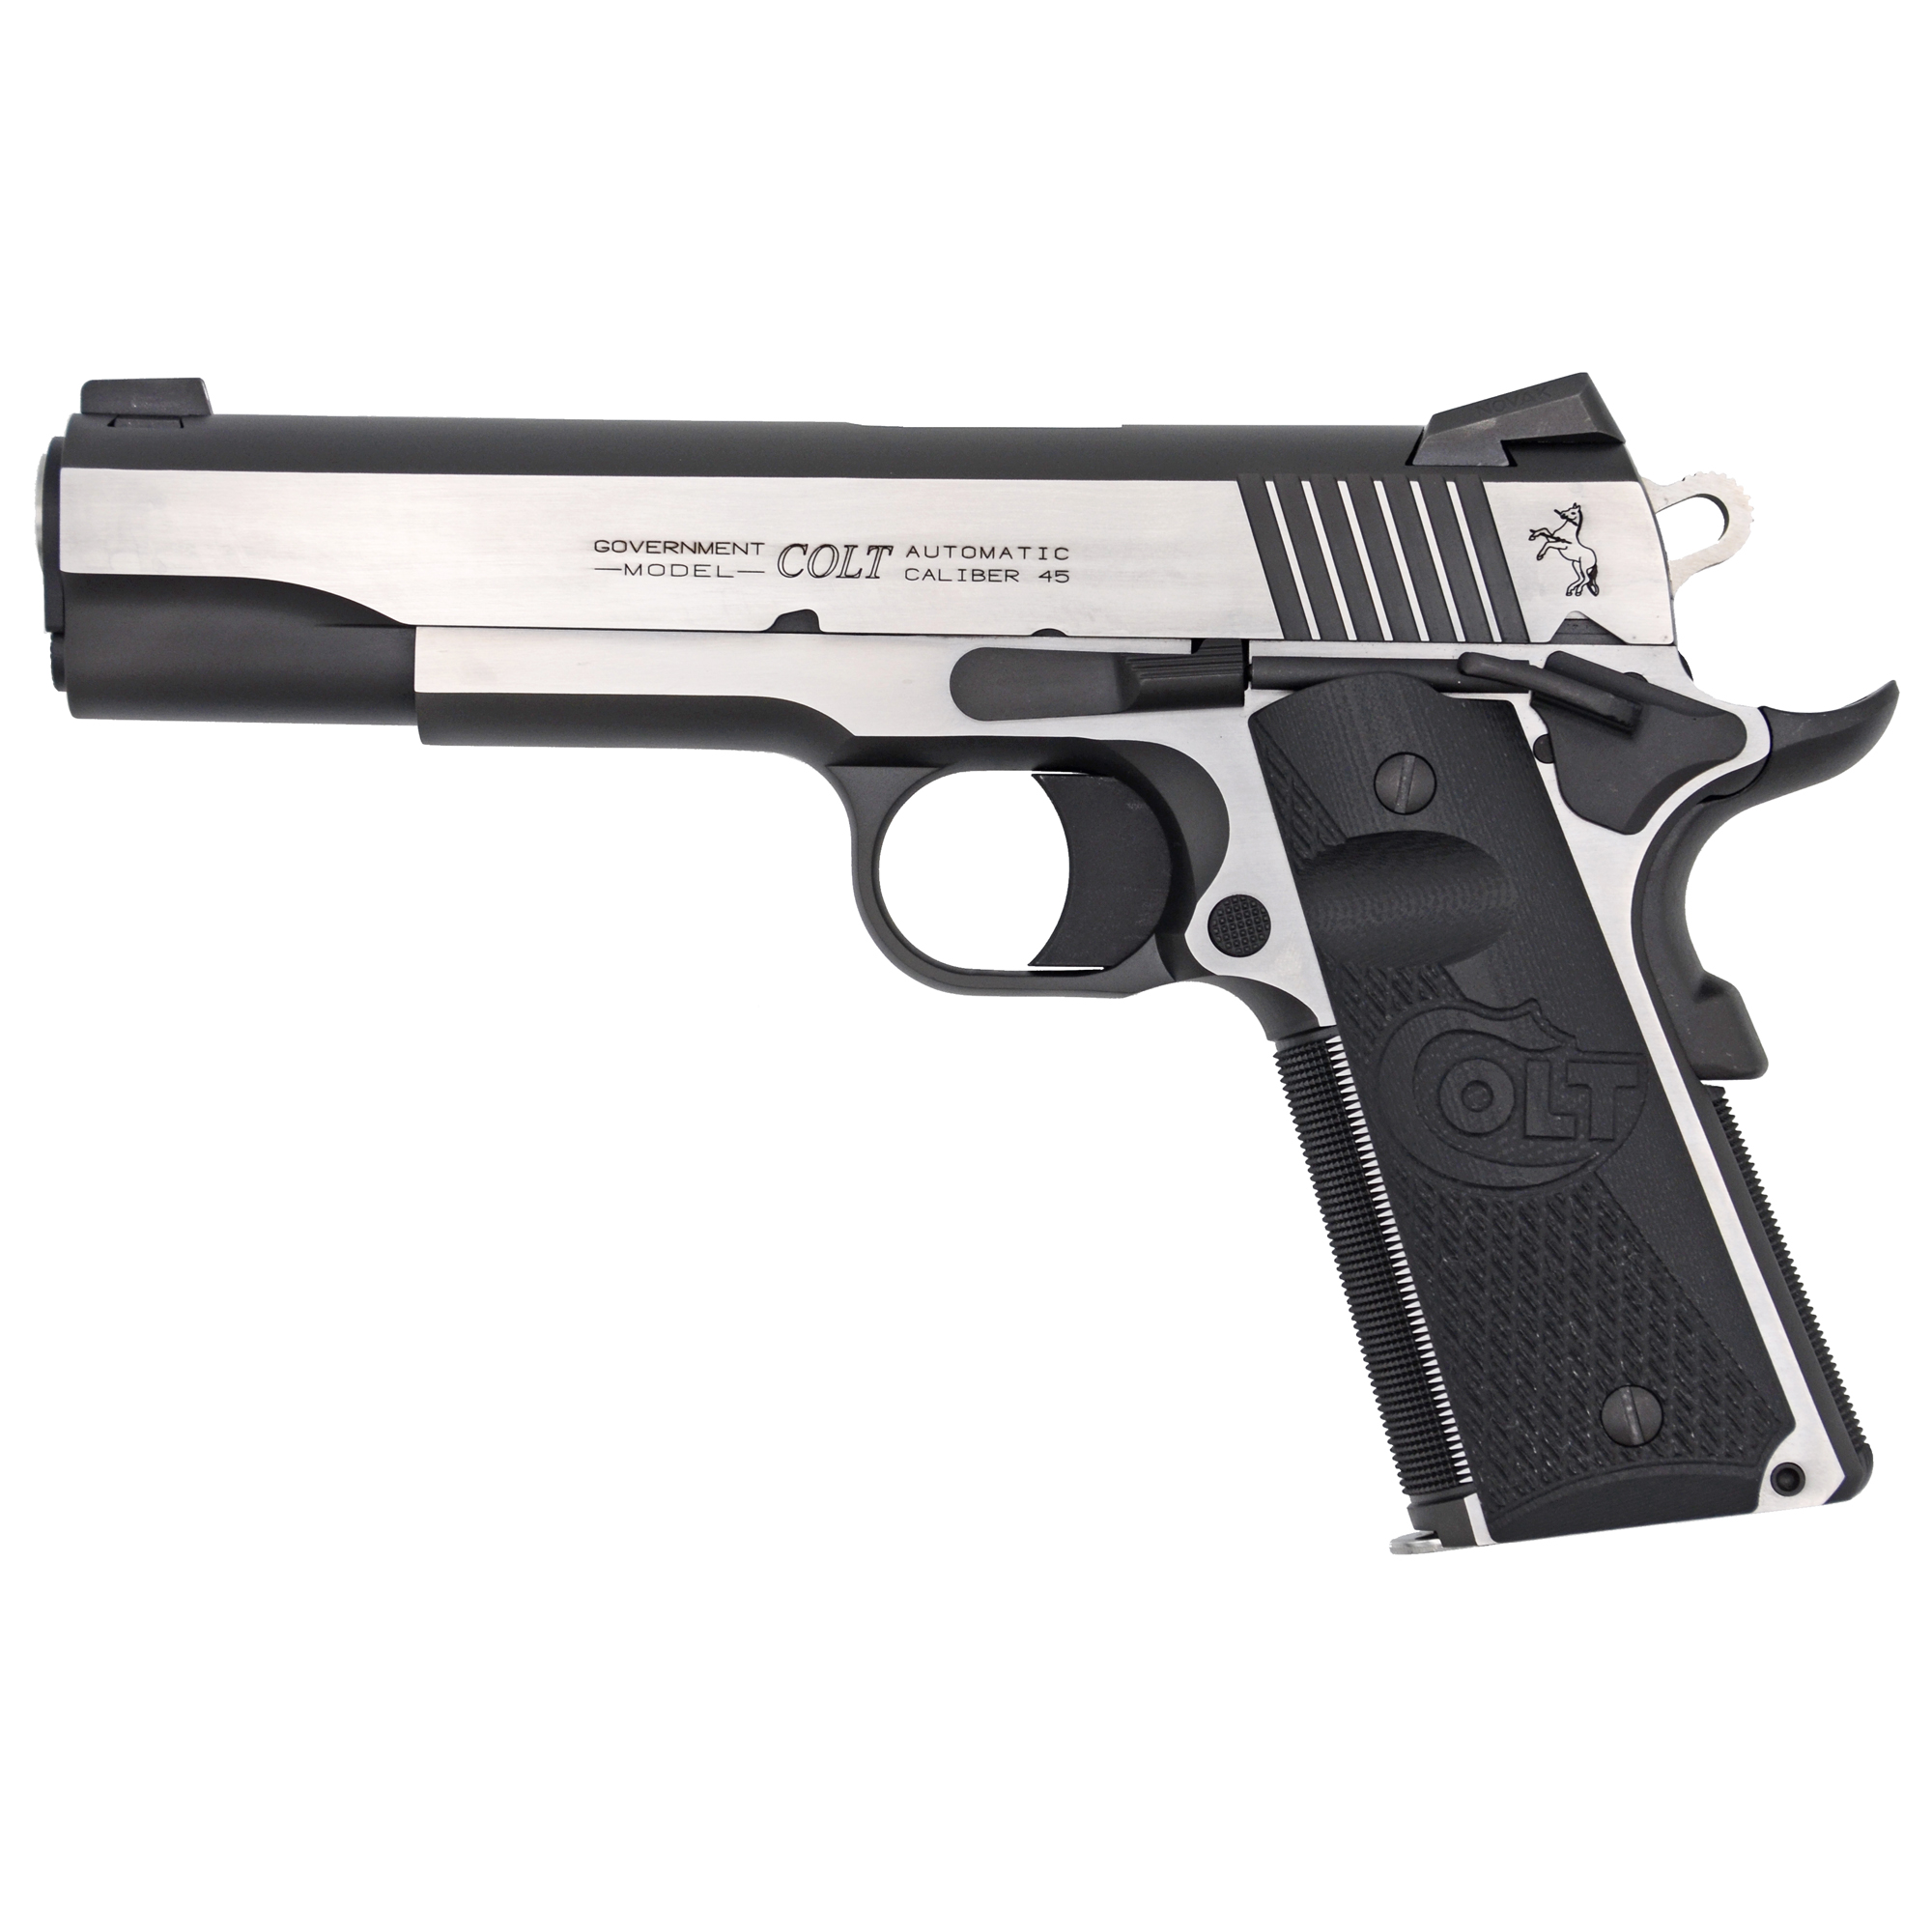 "The Colt M1911 pistol has been a favorite for 100 years as a service pistol"" law enforcement pistol"" and personal defense firearm. This pistol features G10 grips"" an upswept beavertail grip safety and an ambidextrous thumb safety."